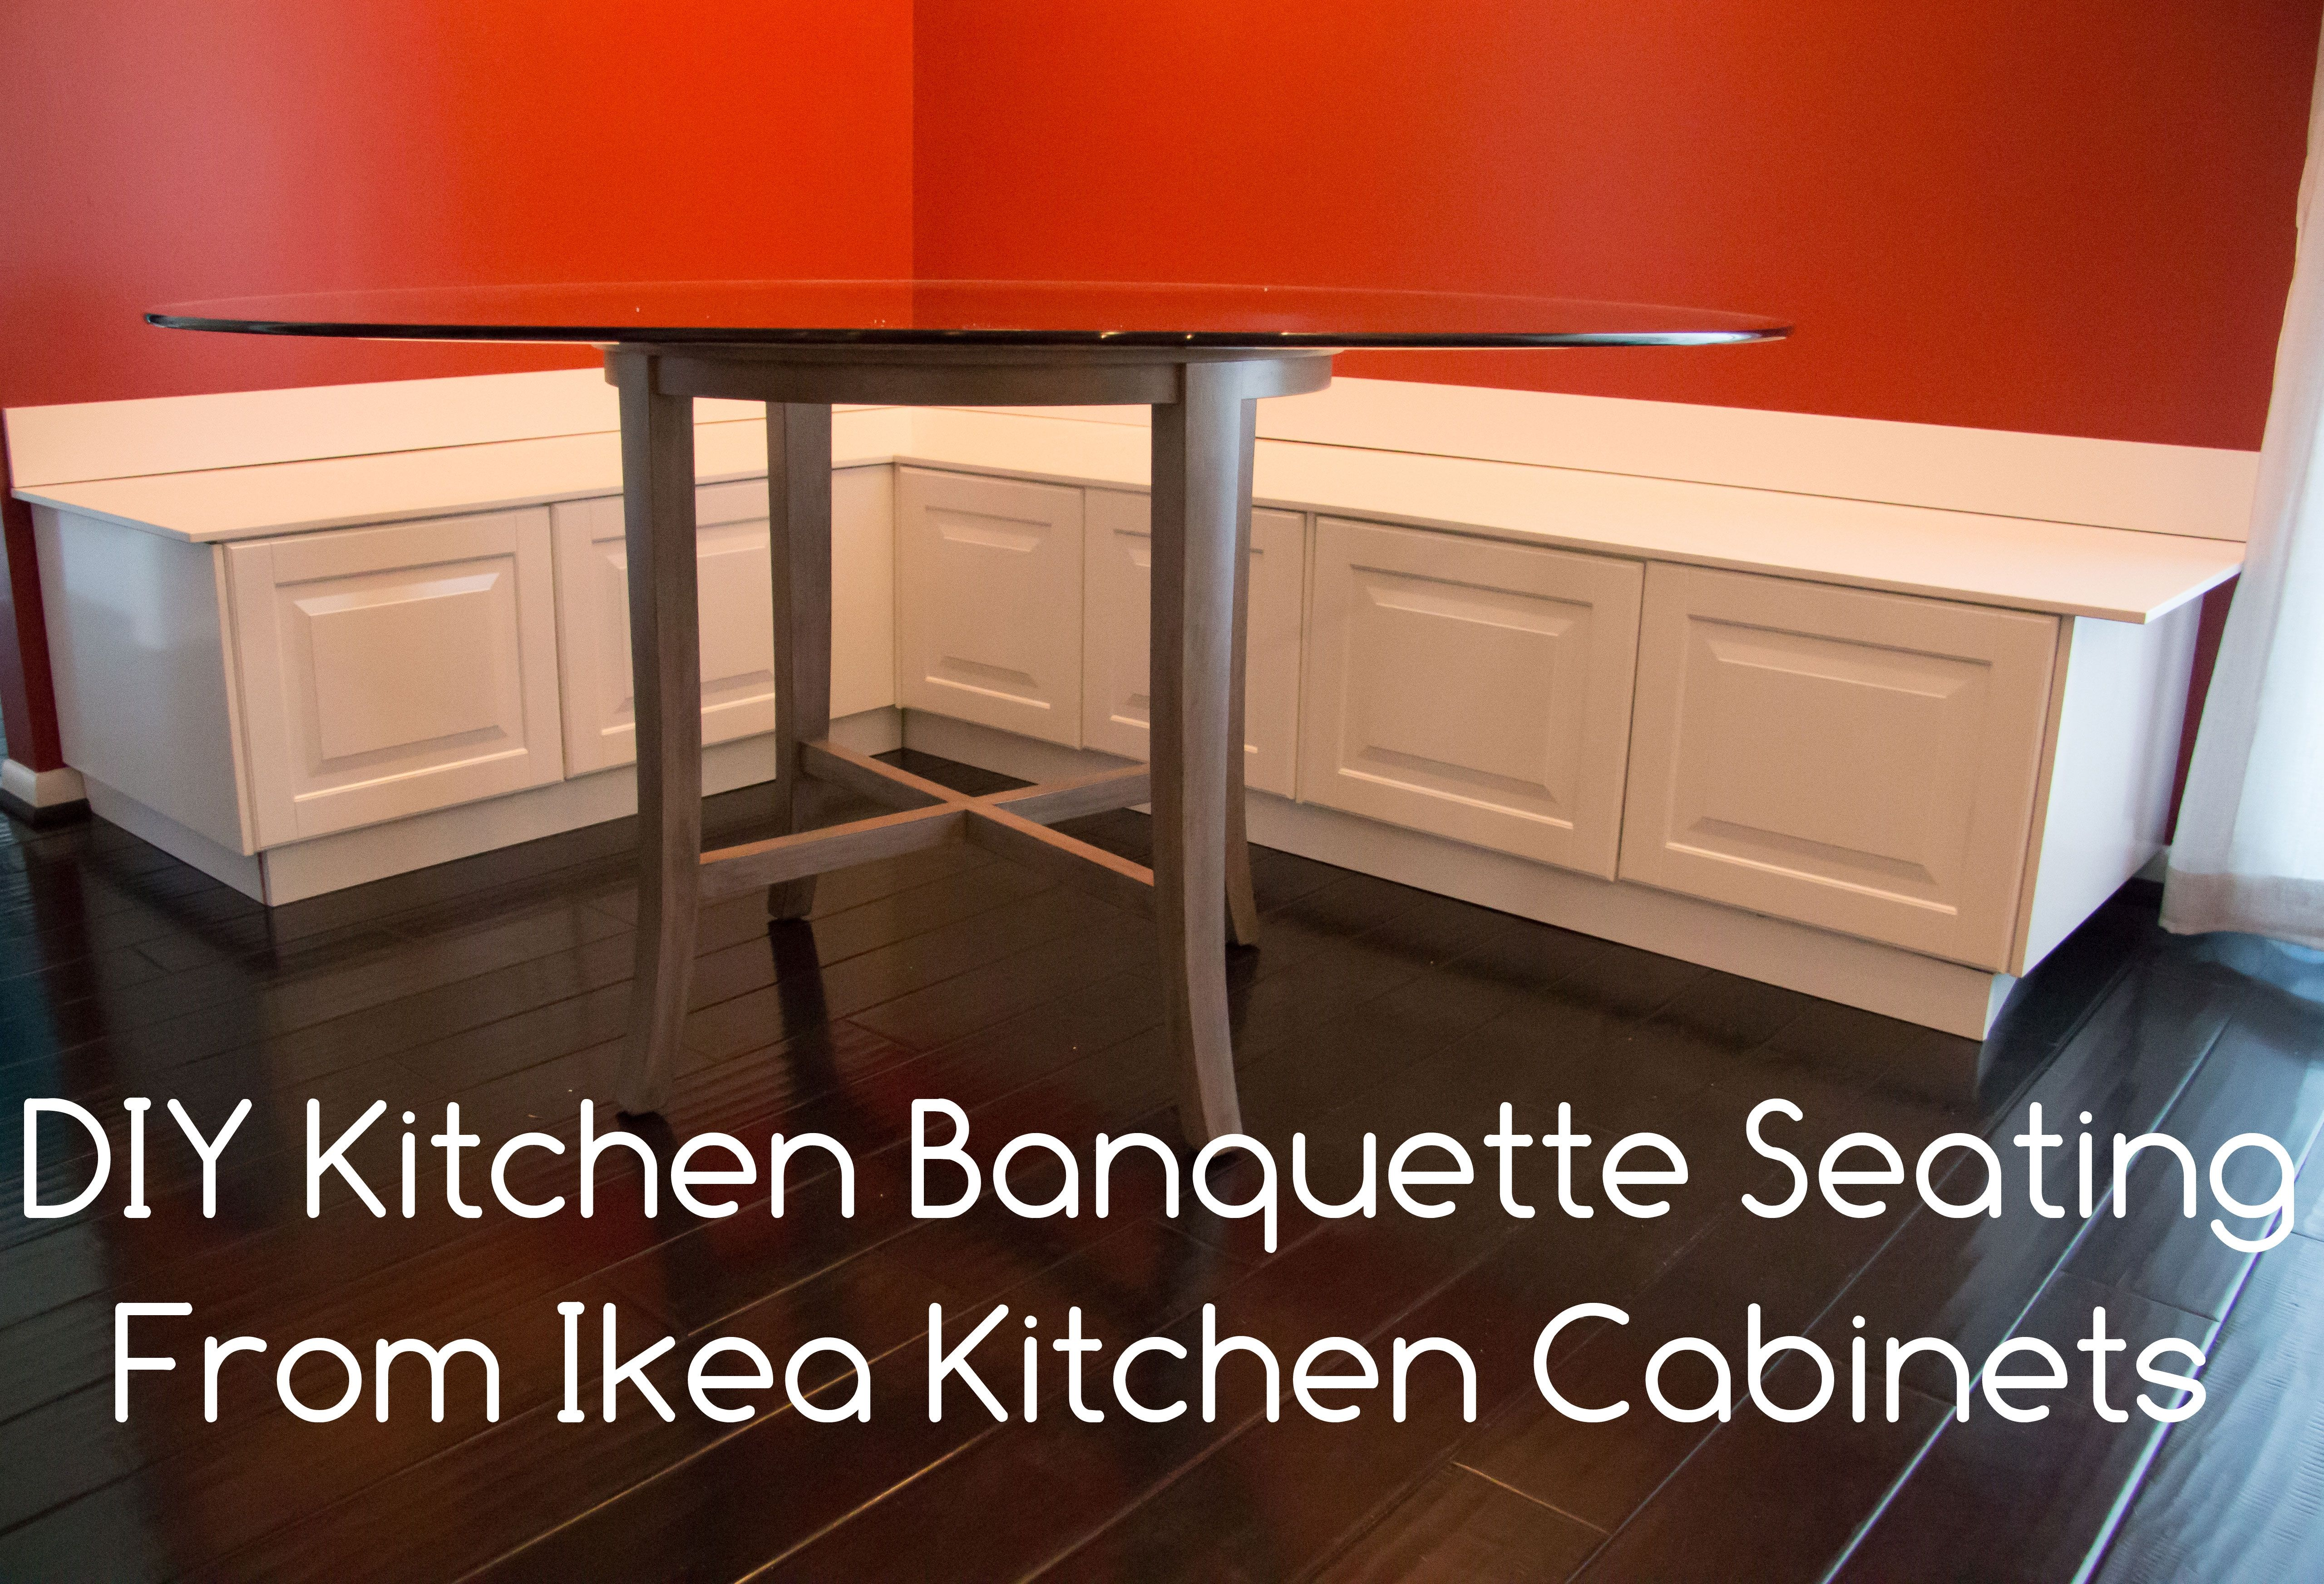 Bancos De Cocina Ikea Diy Kitchen Banquette Seating Using Ikea Cabinets Home Decor